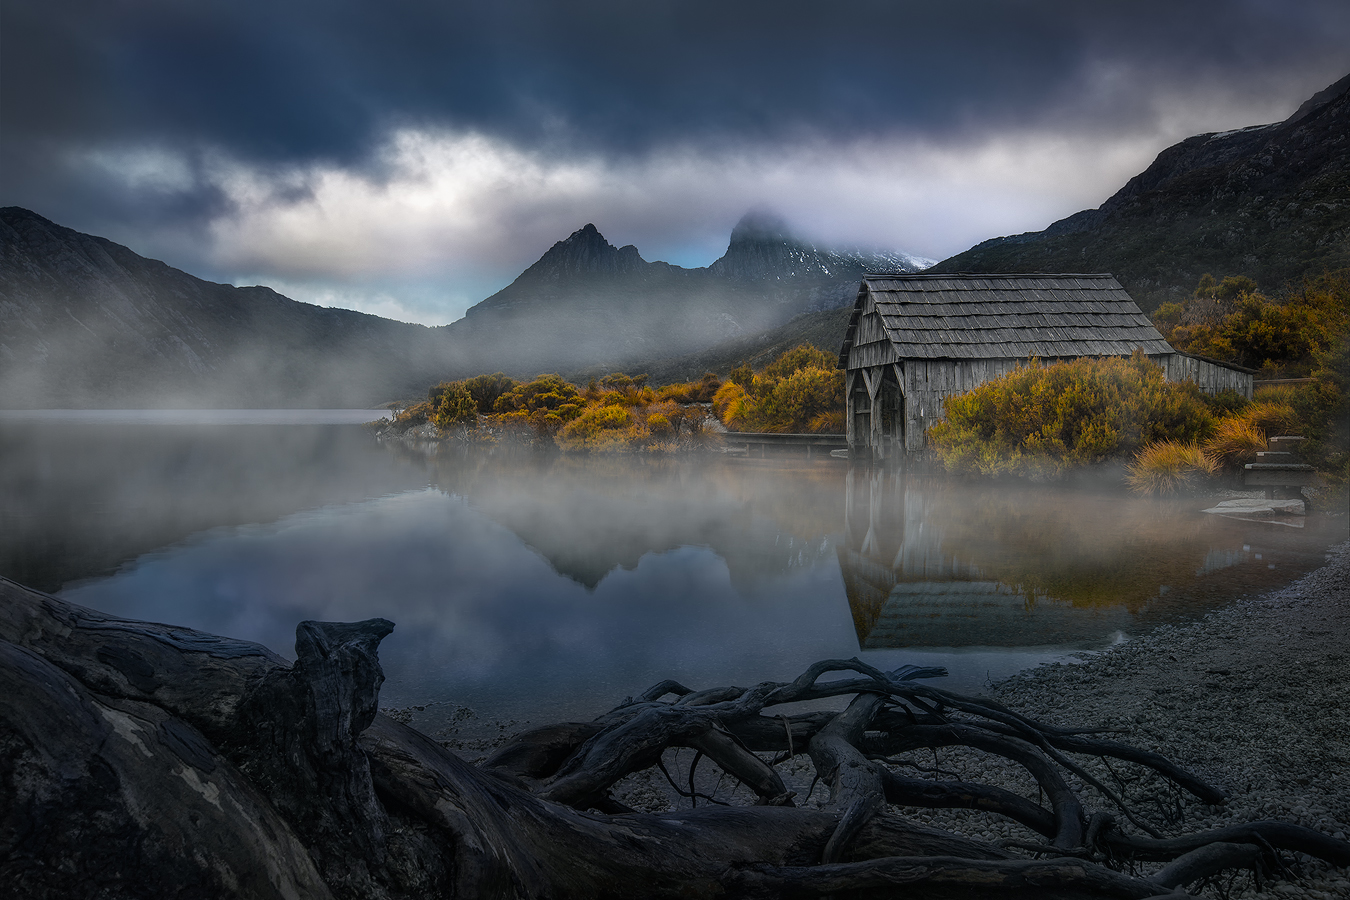 Tasmania Landscape Photography Tour - Moody Cradle Mountain Sunset | We Are Raw Photography